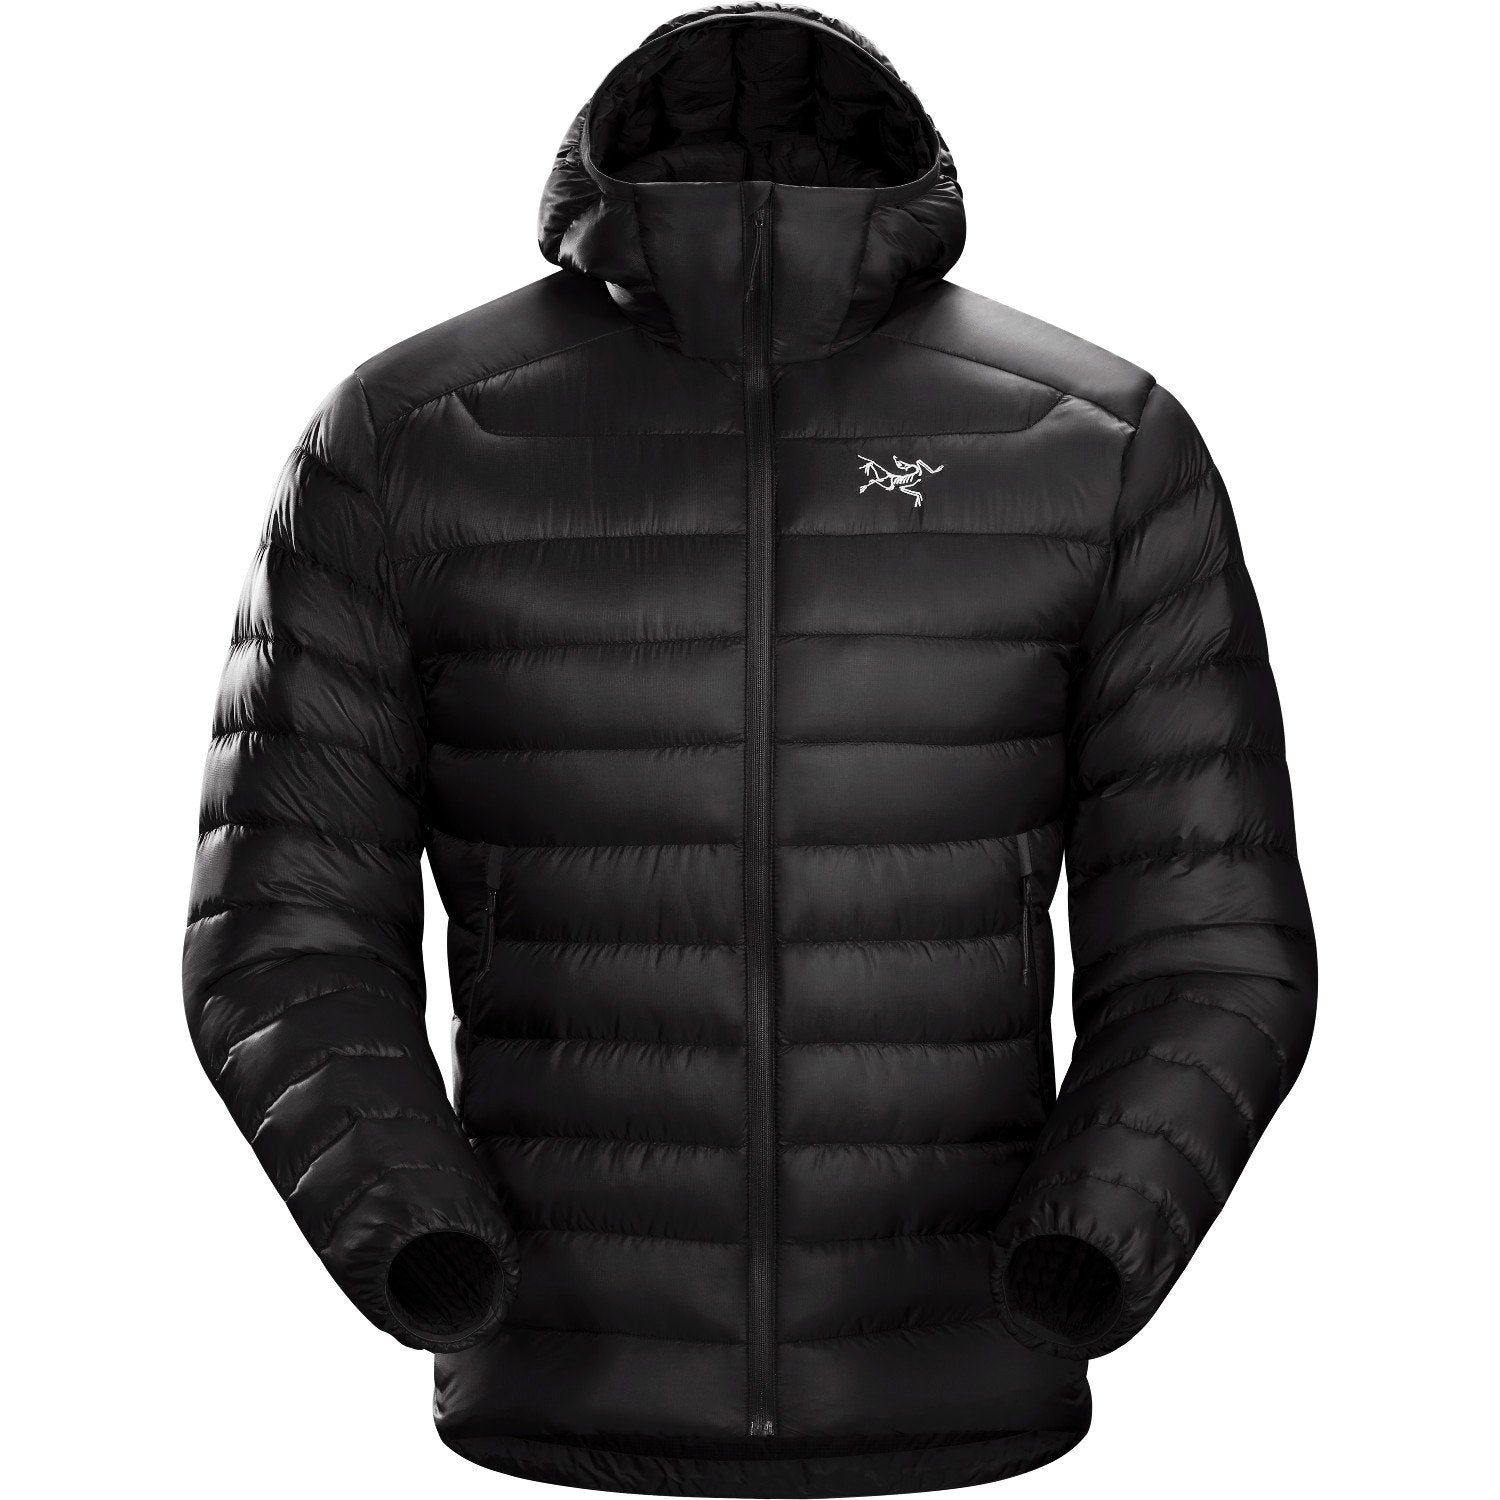 Arc'Teryx Cerium LT in Black colour, front view shown fully zipped up